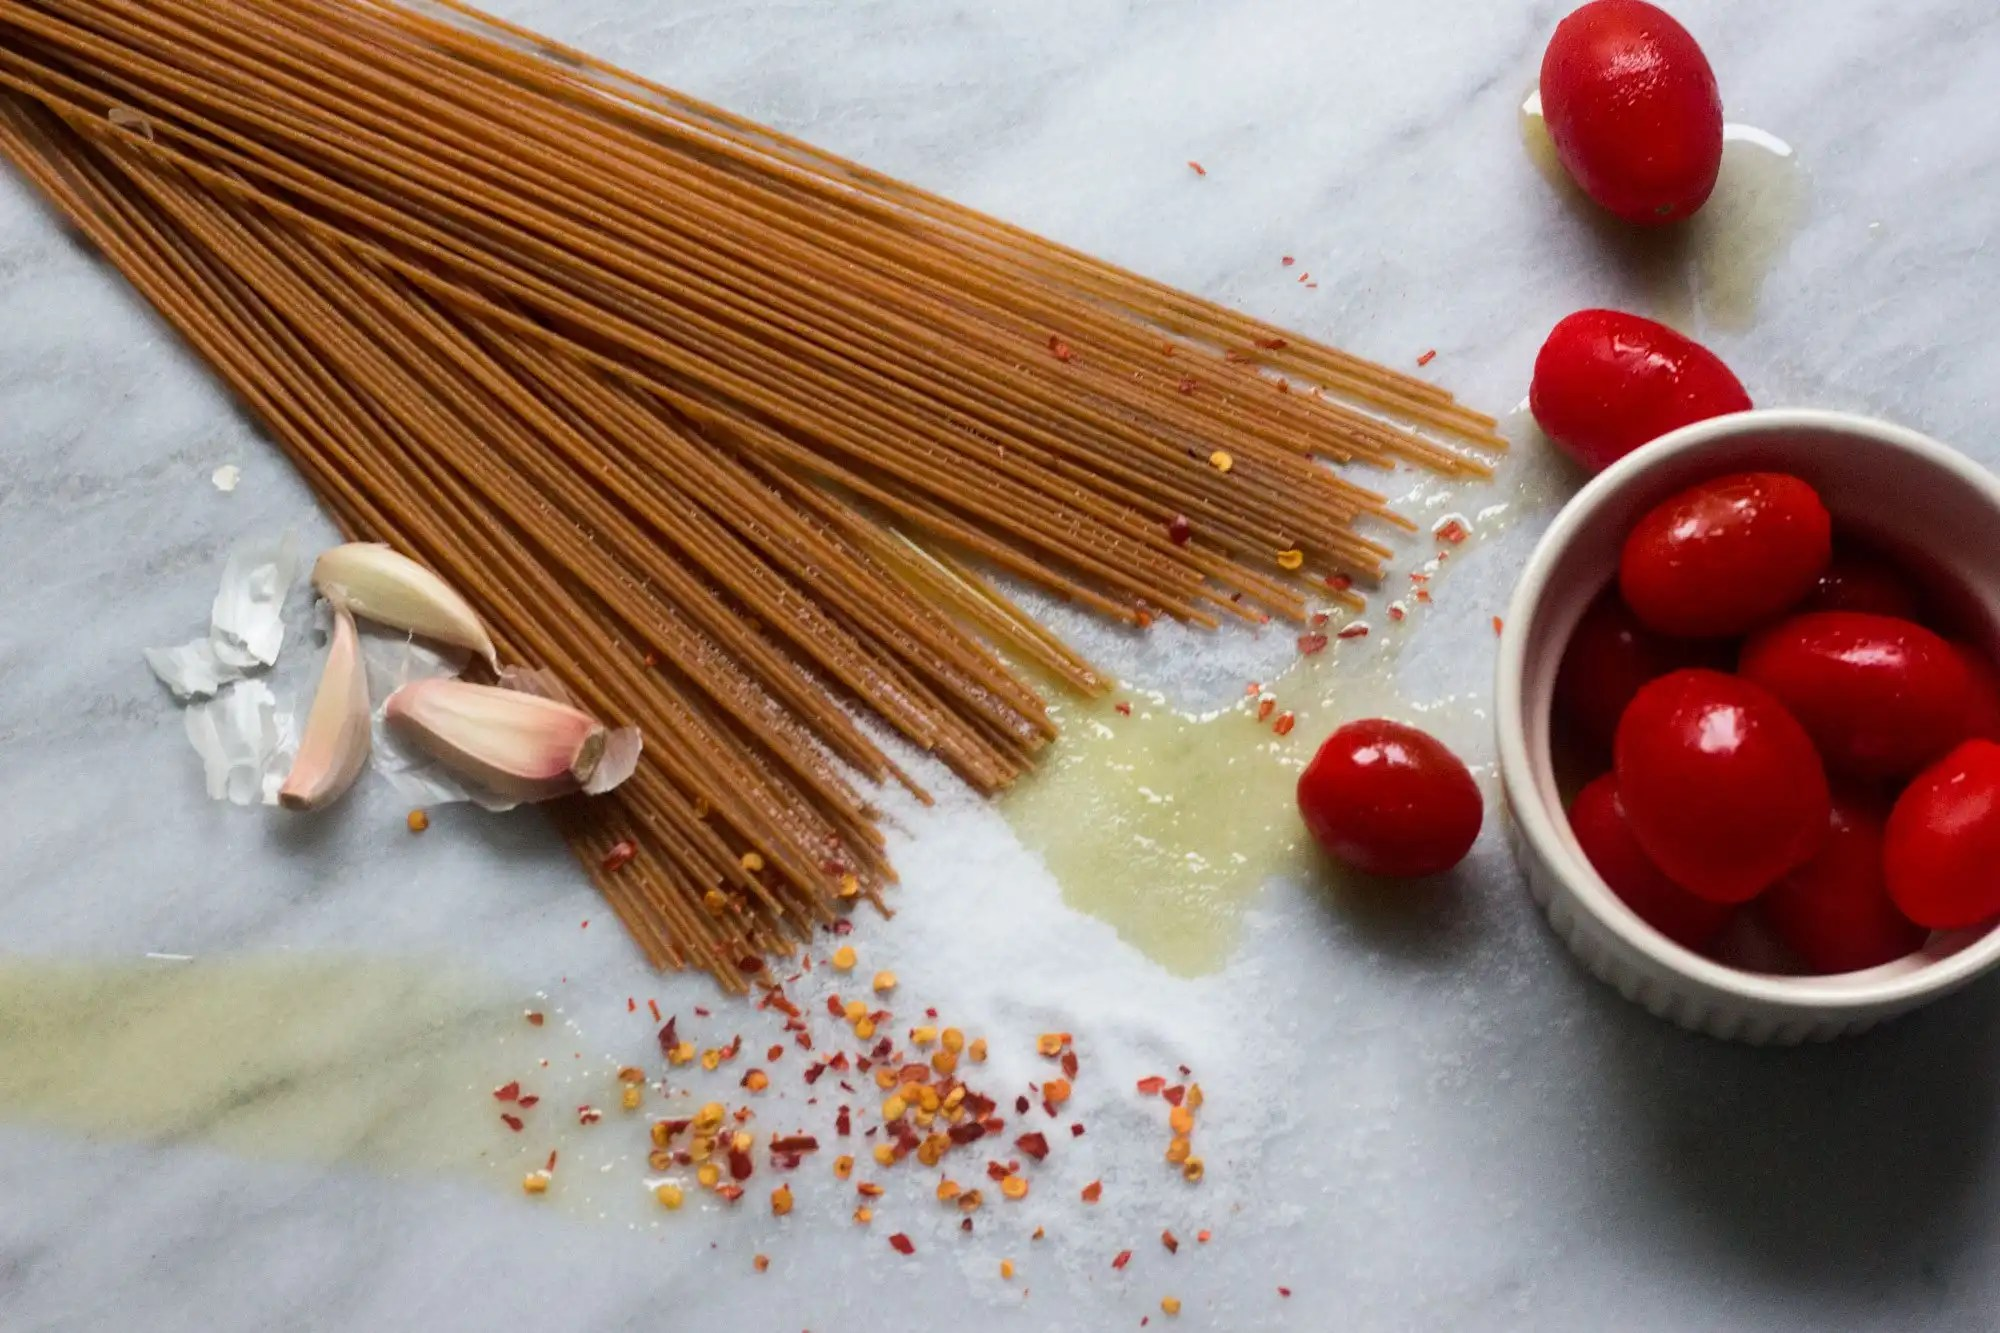 raw ingredients for whole wheat spaghetti with garlic blistered tomatoes